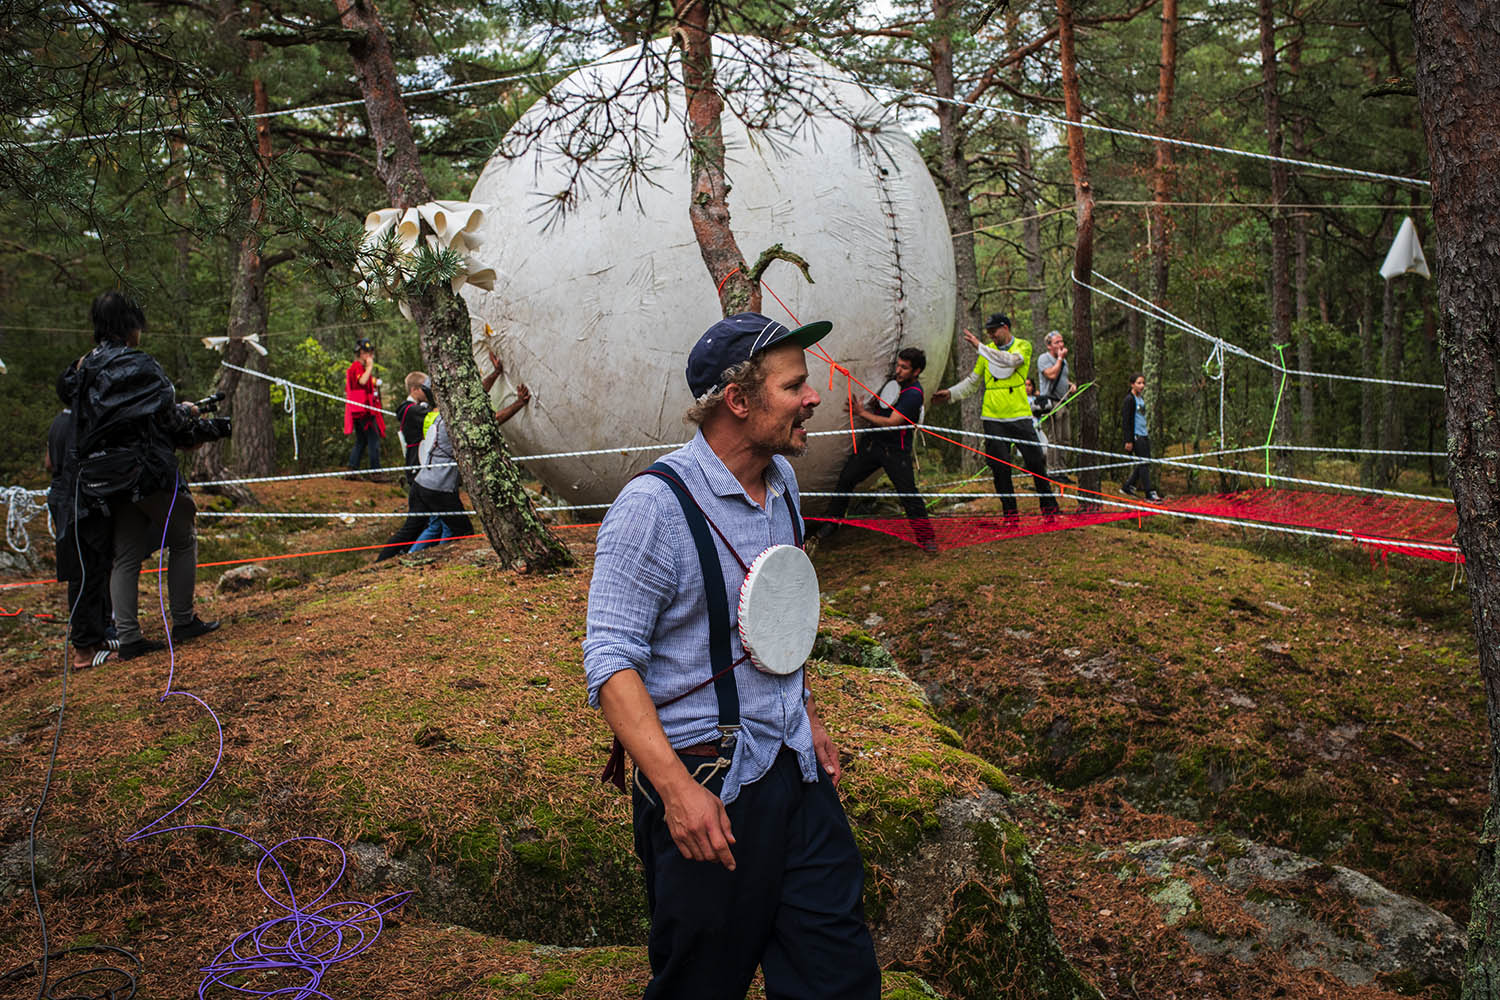 People rolling a giant ball in the forrest.